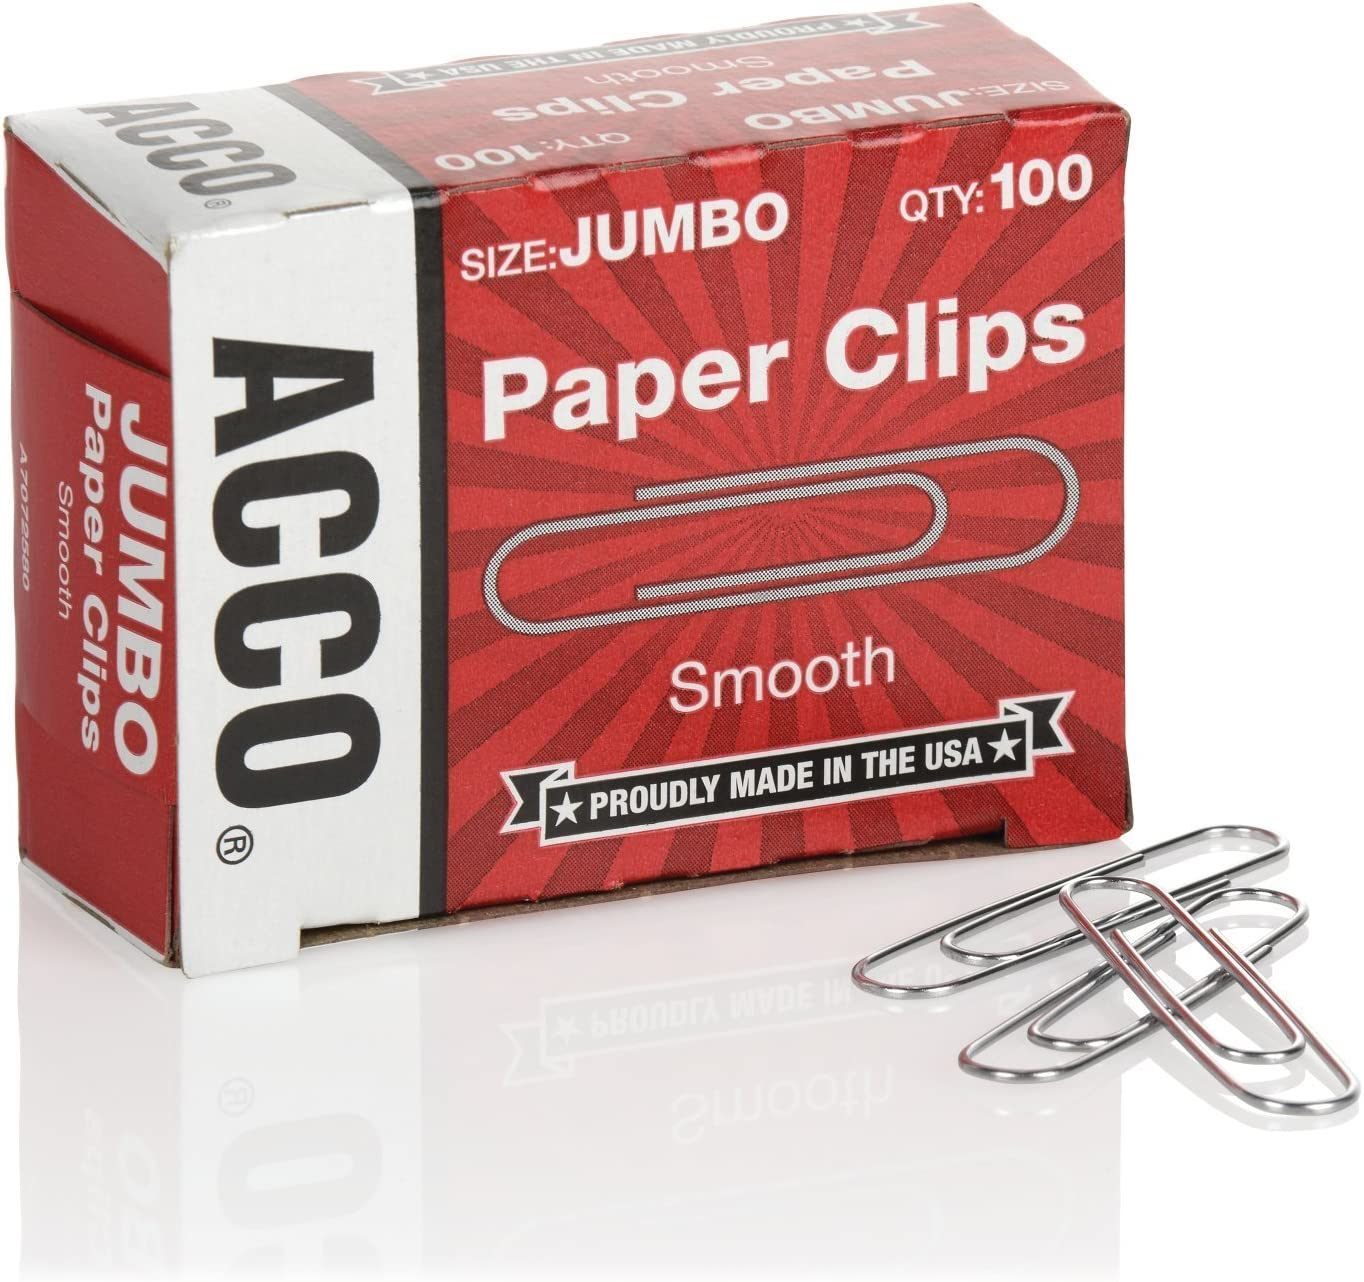 Silver ACCO Jumbo Paper Clips Non-Skid Premium 1 Box of 100 Clips A7072510 20 Sheet Capacity 2 Steel Wire